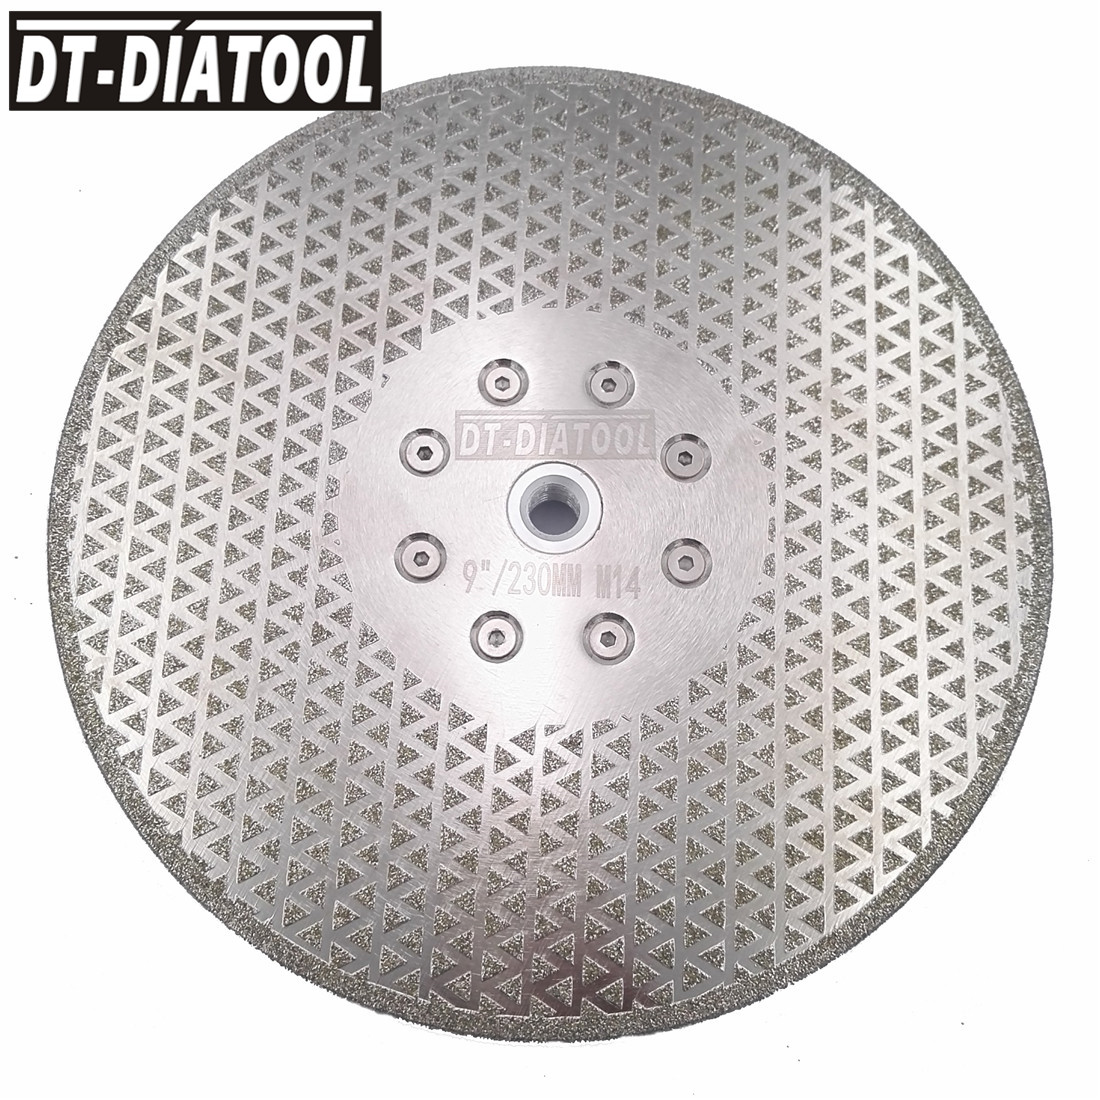 DT DIATOOL 1piece Dia 230mm/9inch Multi puprose Diamond Saw Blade Cutting Disc for Granite Marble Tile Grinding Wheel M14 Flange